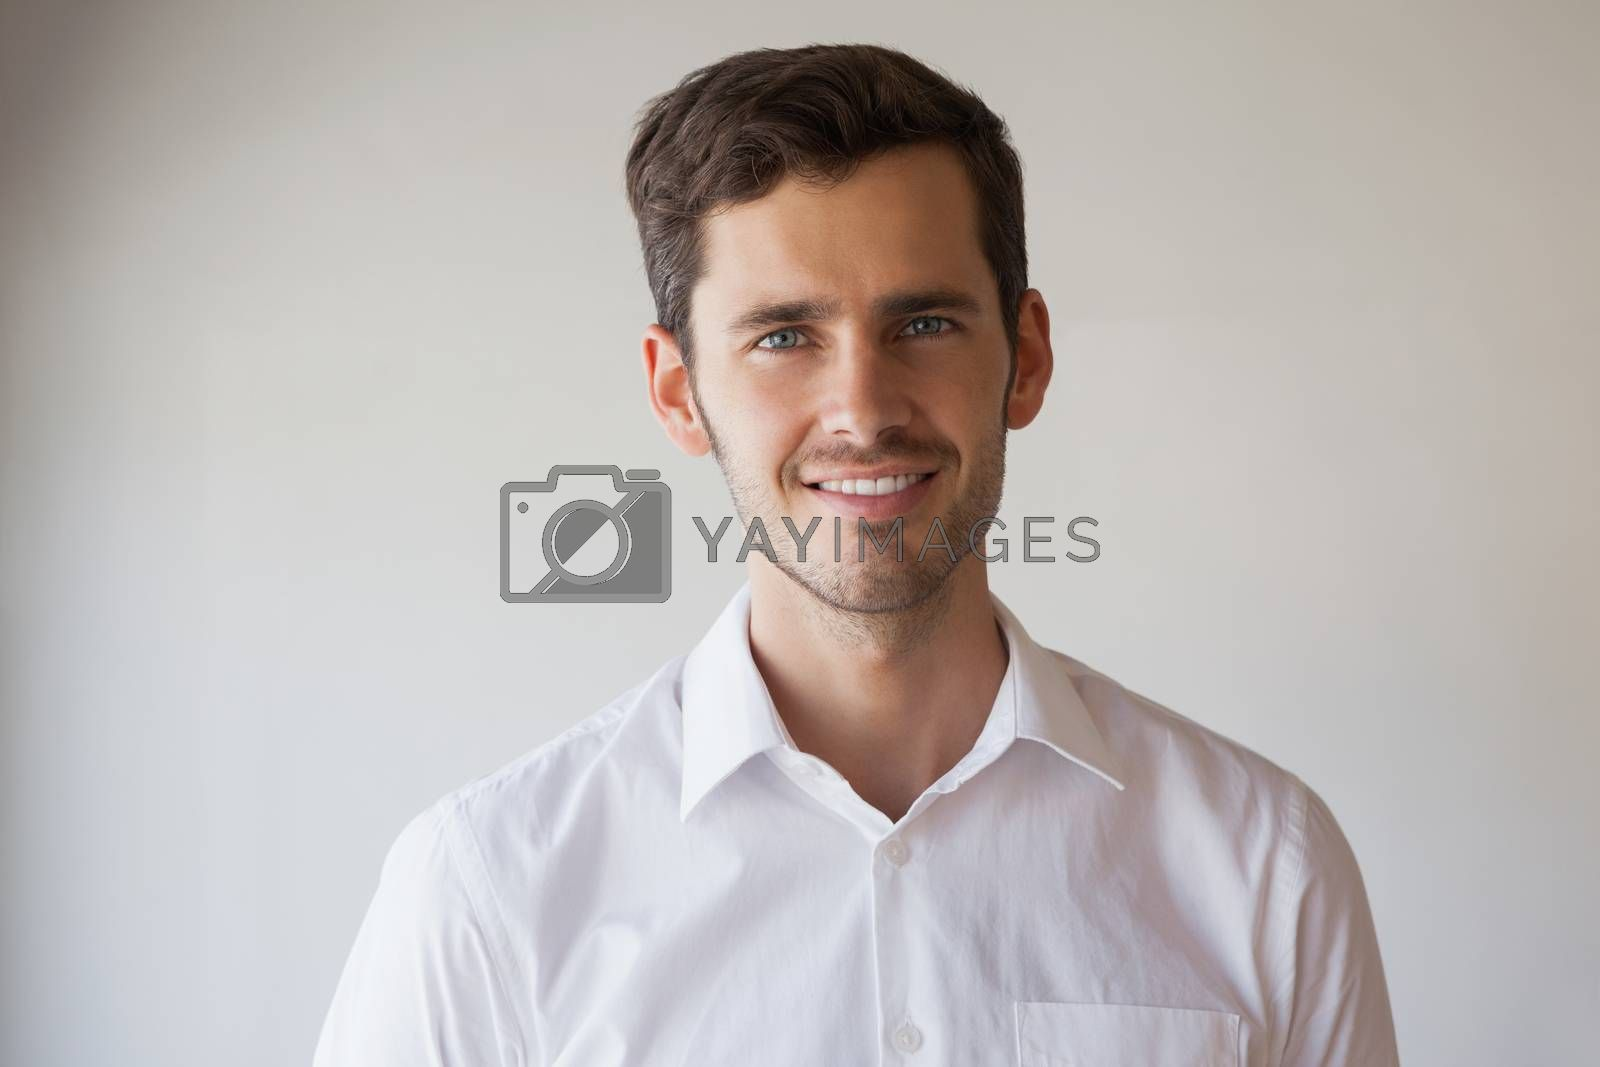 Royalty free image of Casual businessman smiling at camera by Wavebreakmedia